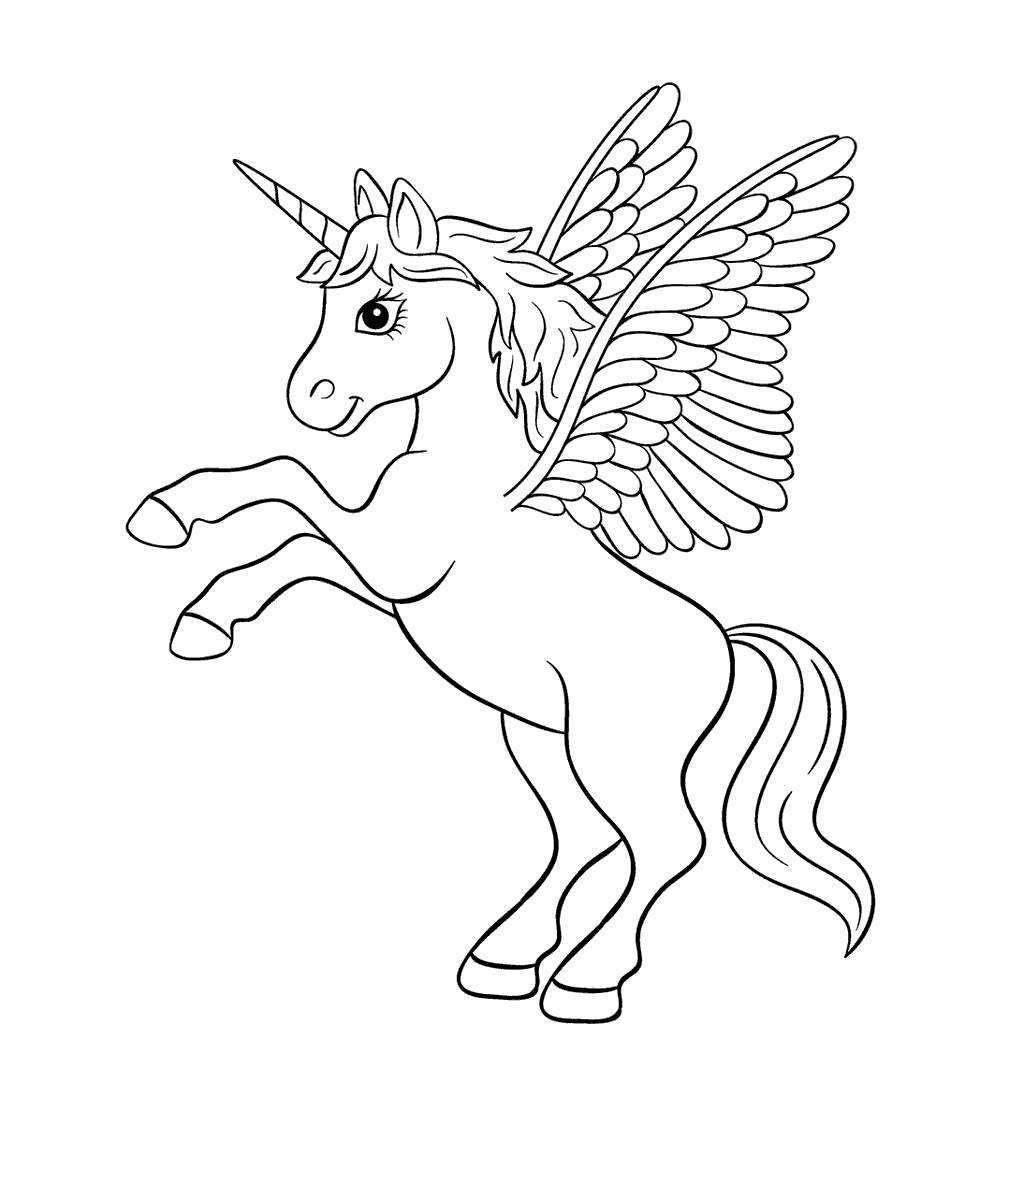 Red Queen Coloring Book Luxury Coloring Pages Unicorn Coloring Pages Kids Book Barbie Horse Coloring Pages Unicorn Coloring Pages Bear Coloring Pages